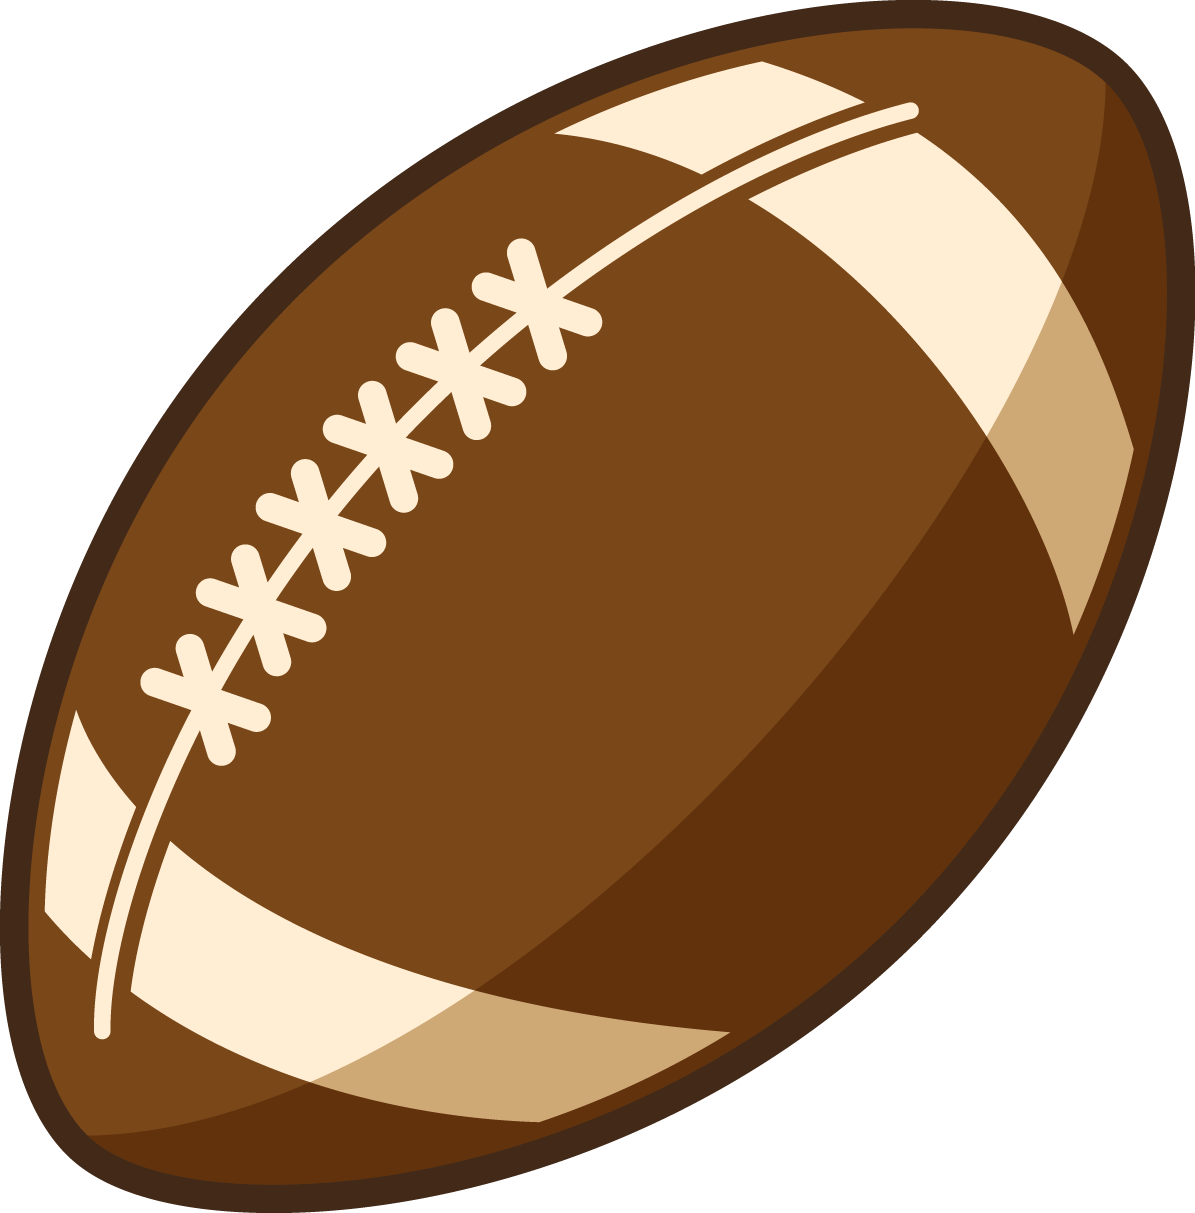 1195x1213 Free To Use Amp Public Domain Football Clip Art